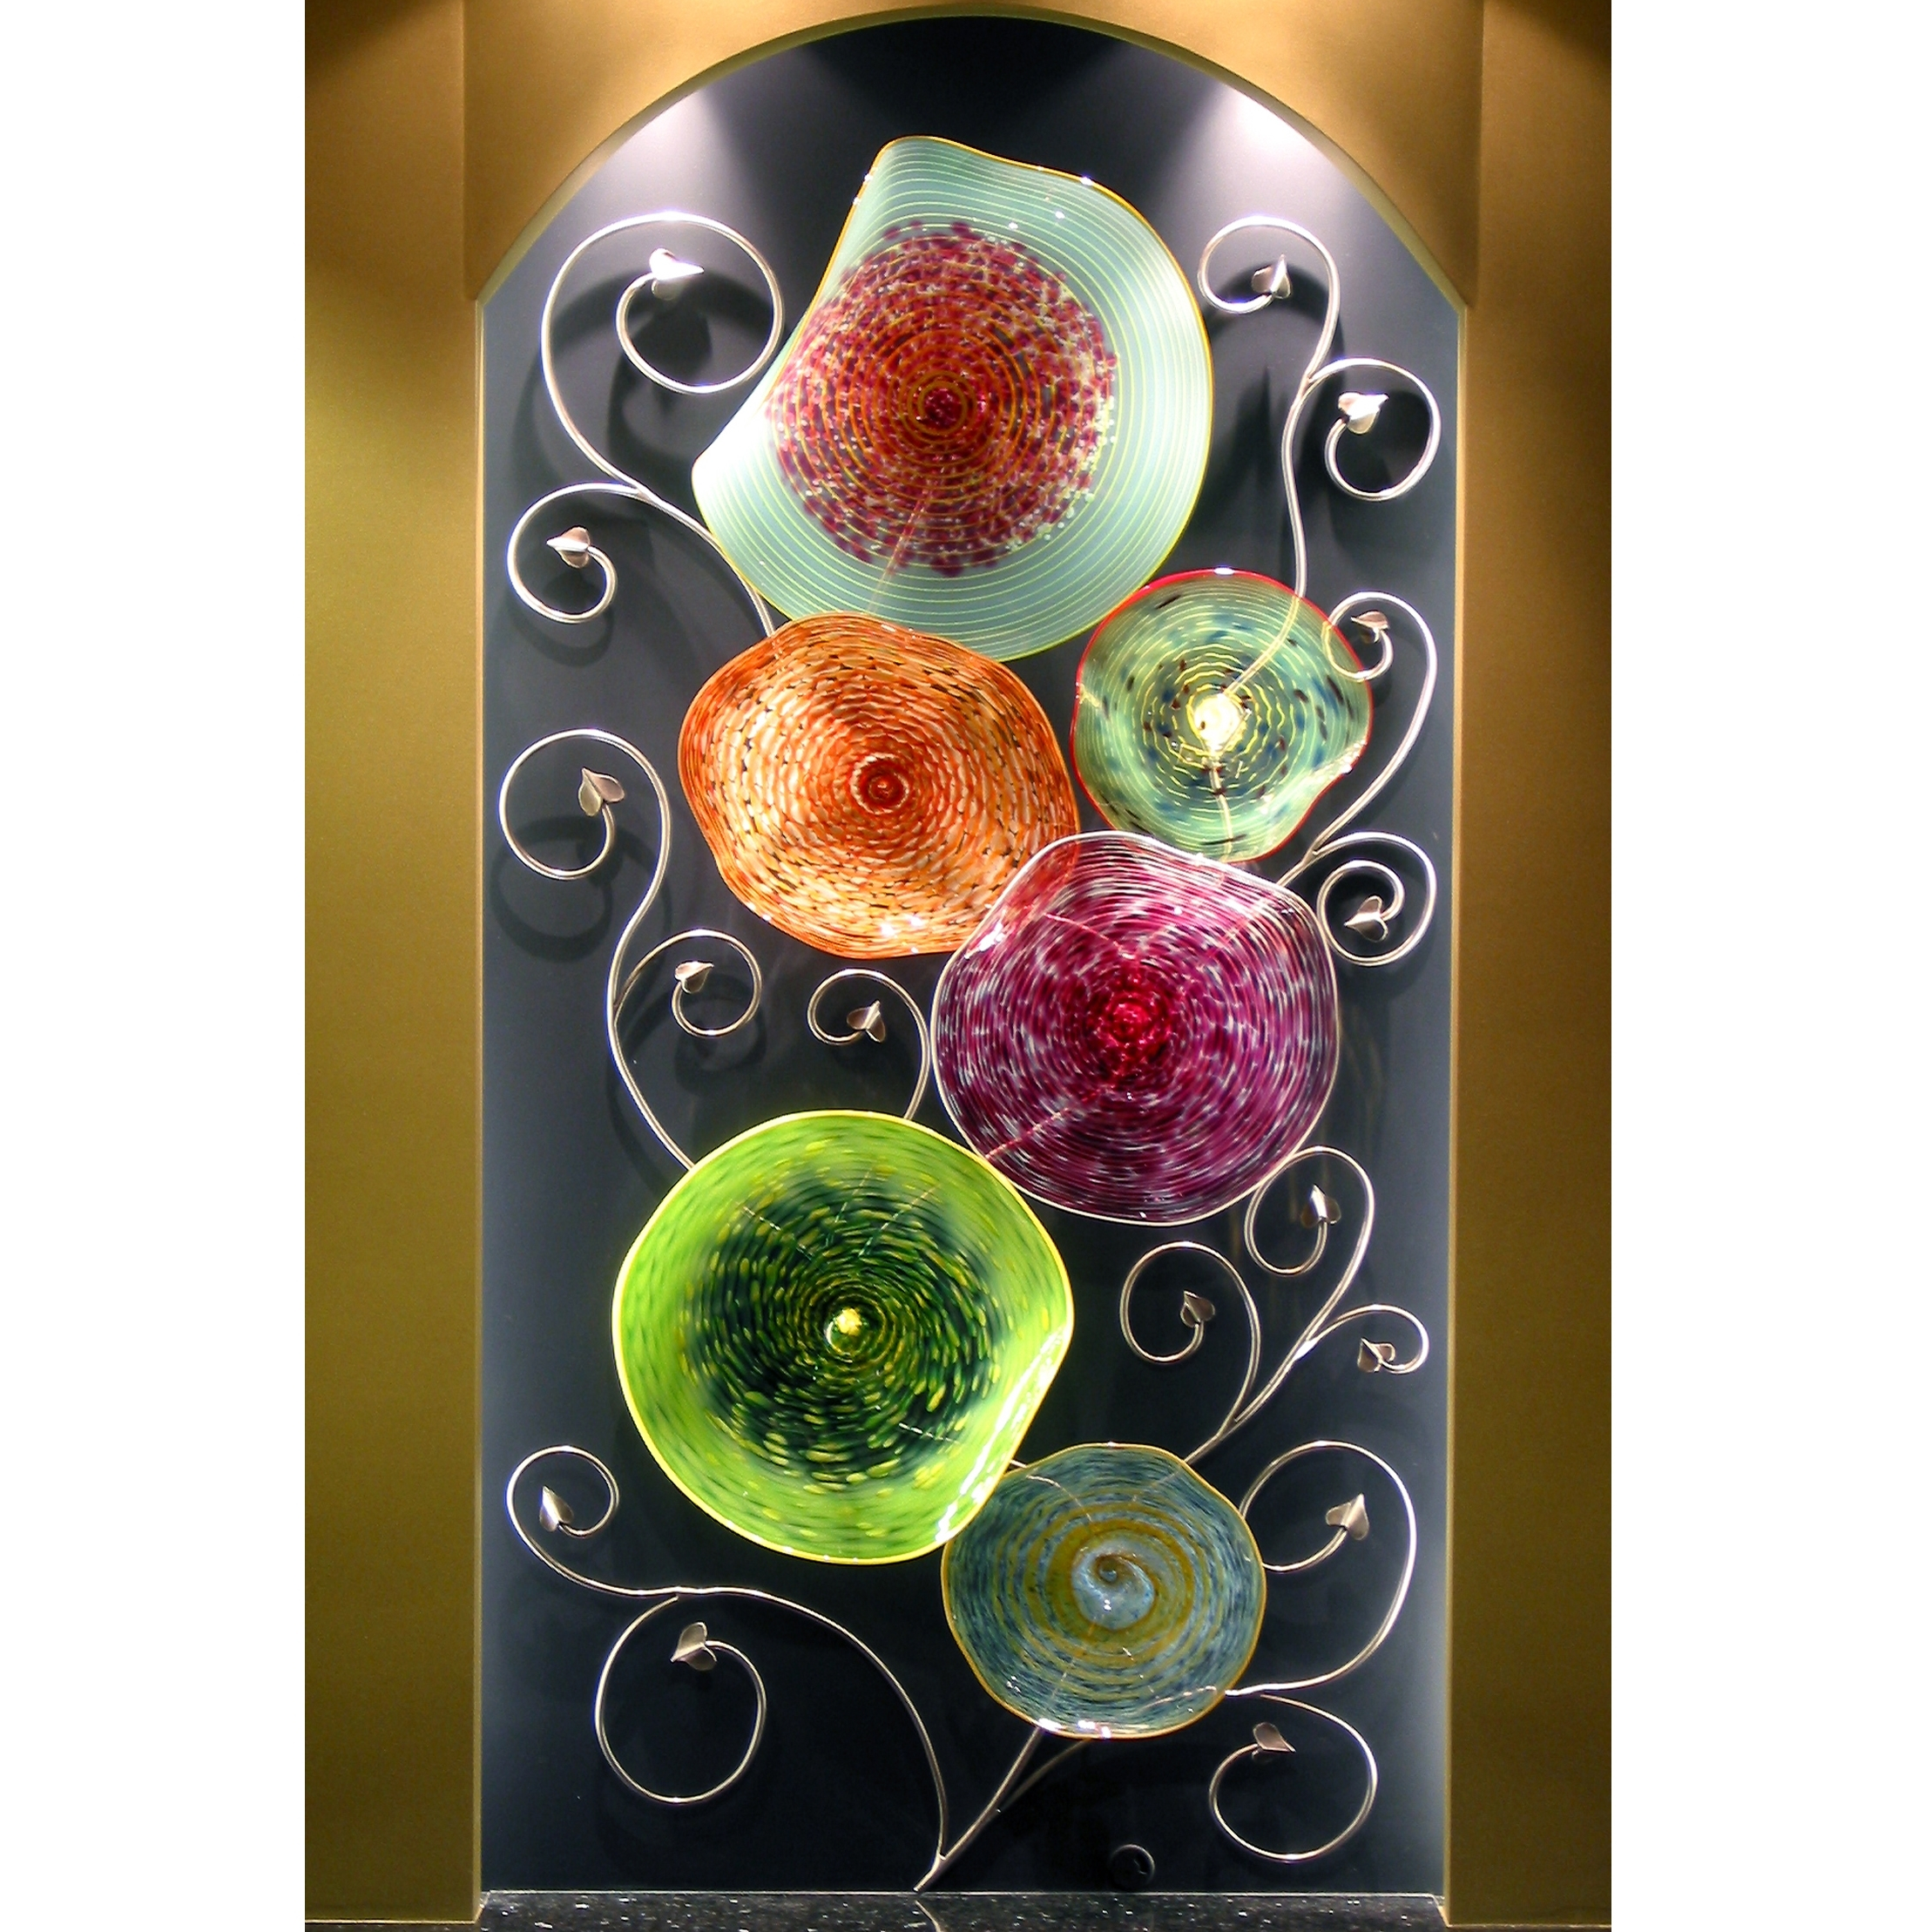 Hand Blown Glass Wall Art Sculpture | Artisan Crafted Home Within Latest Blown Glass Wall Art (View 13 of 20)